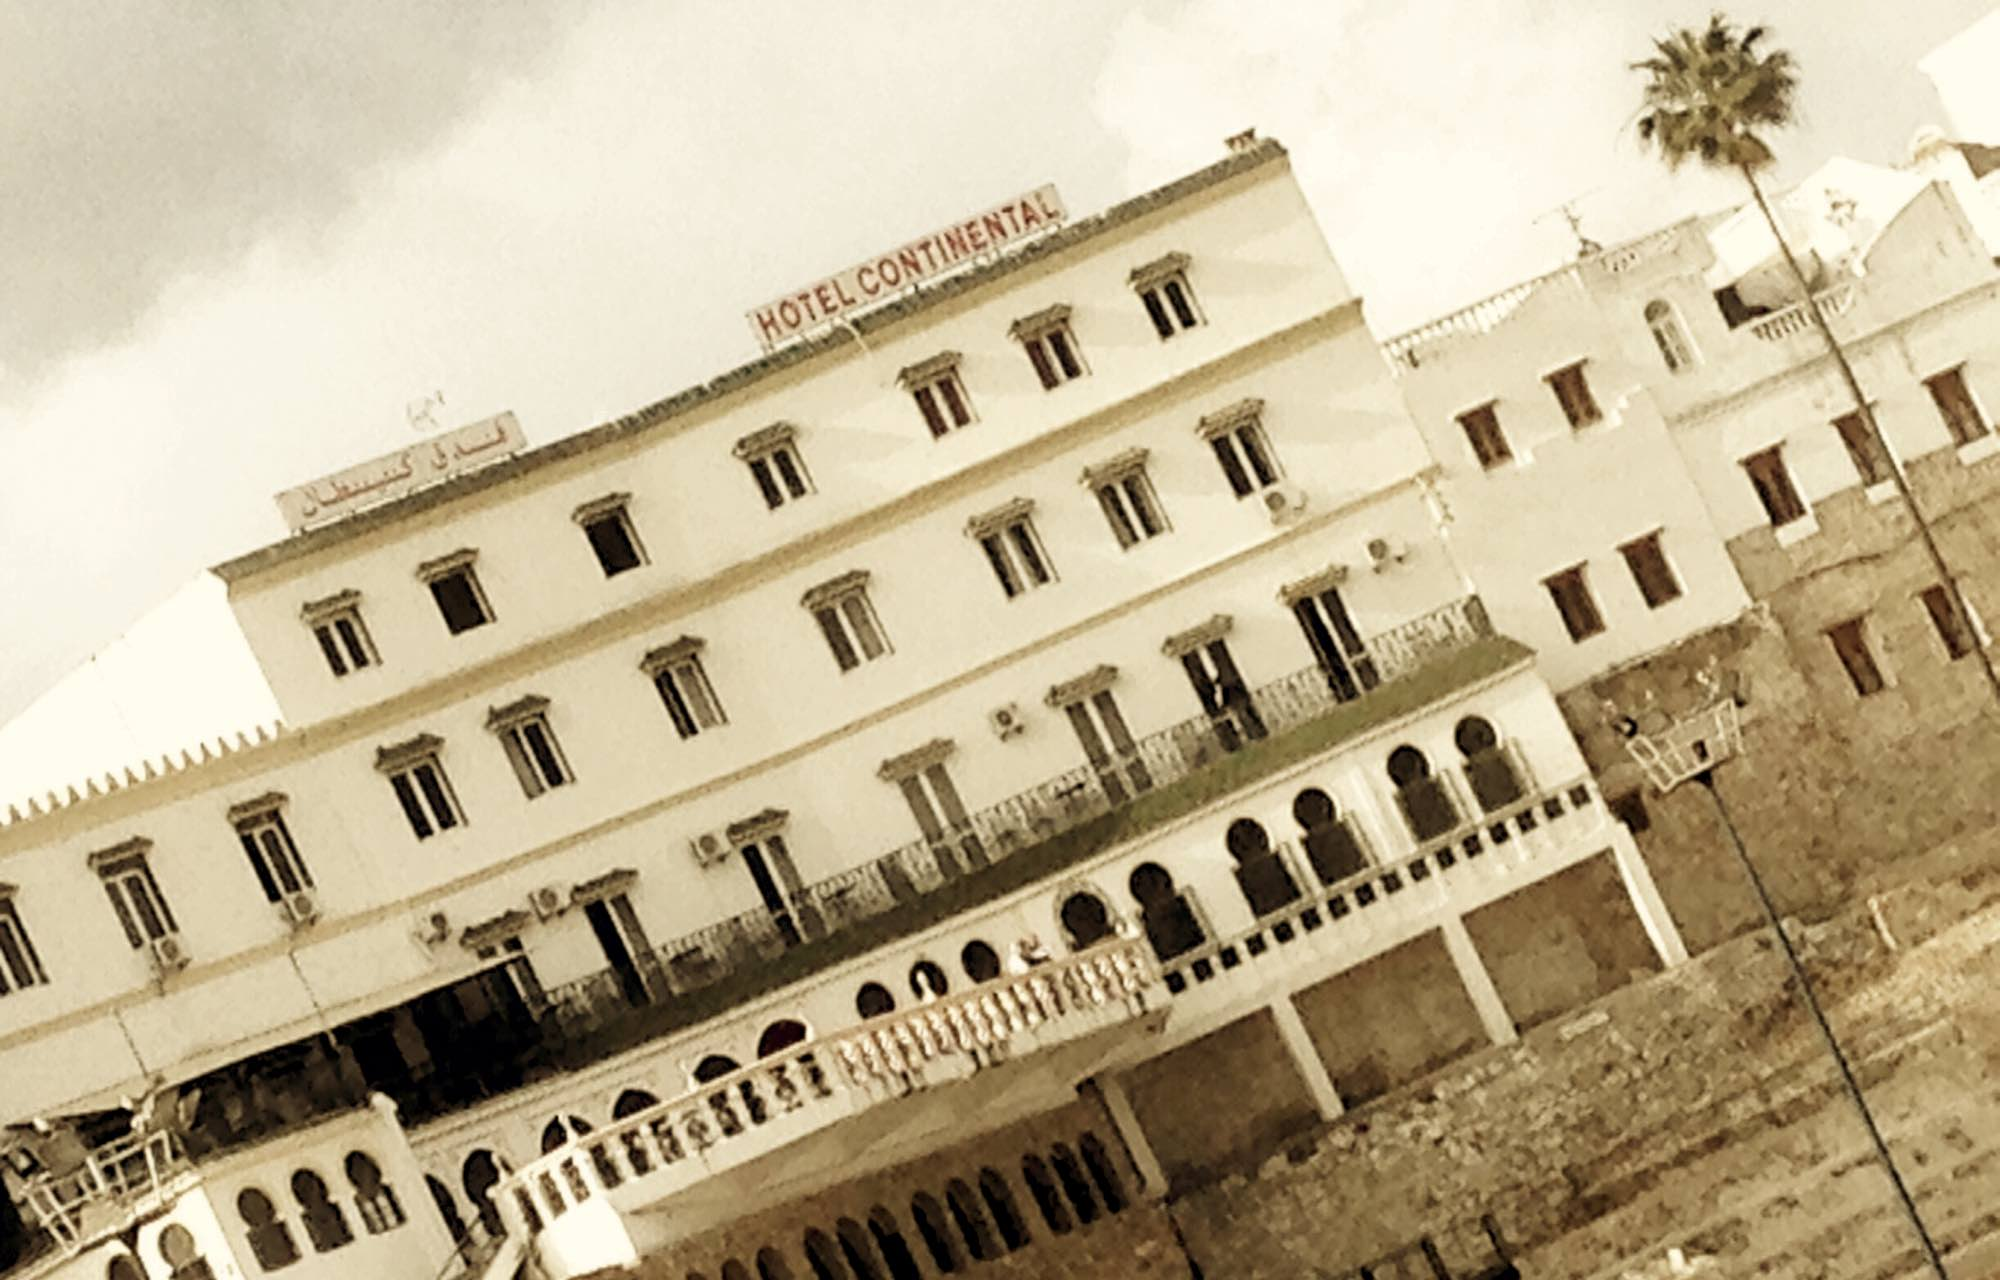 Hotel Continental in Tanger